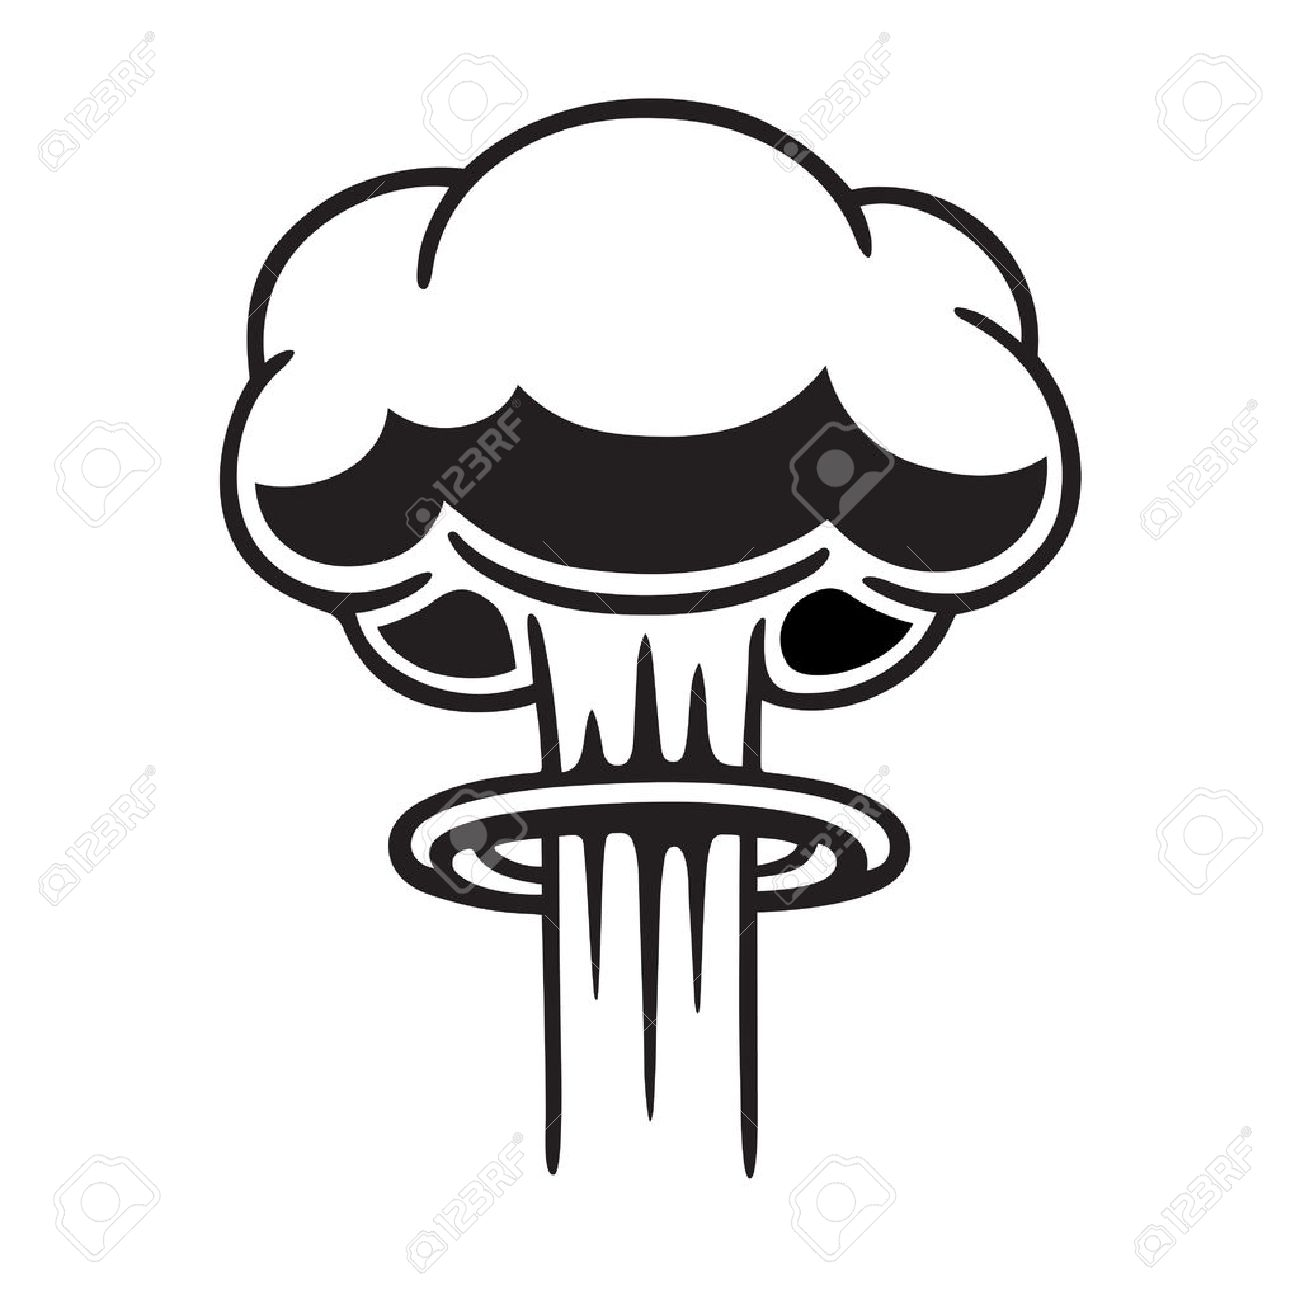 hight resolution of cartoon comic style nuclear mushroom cloud illustration black and white vector clip art graphic